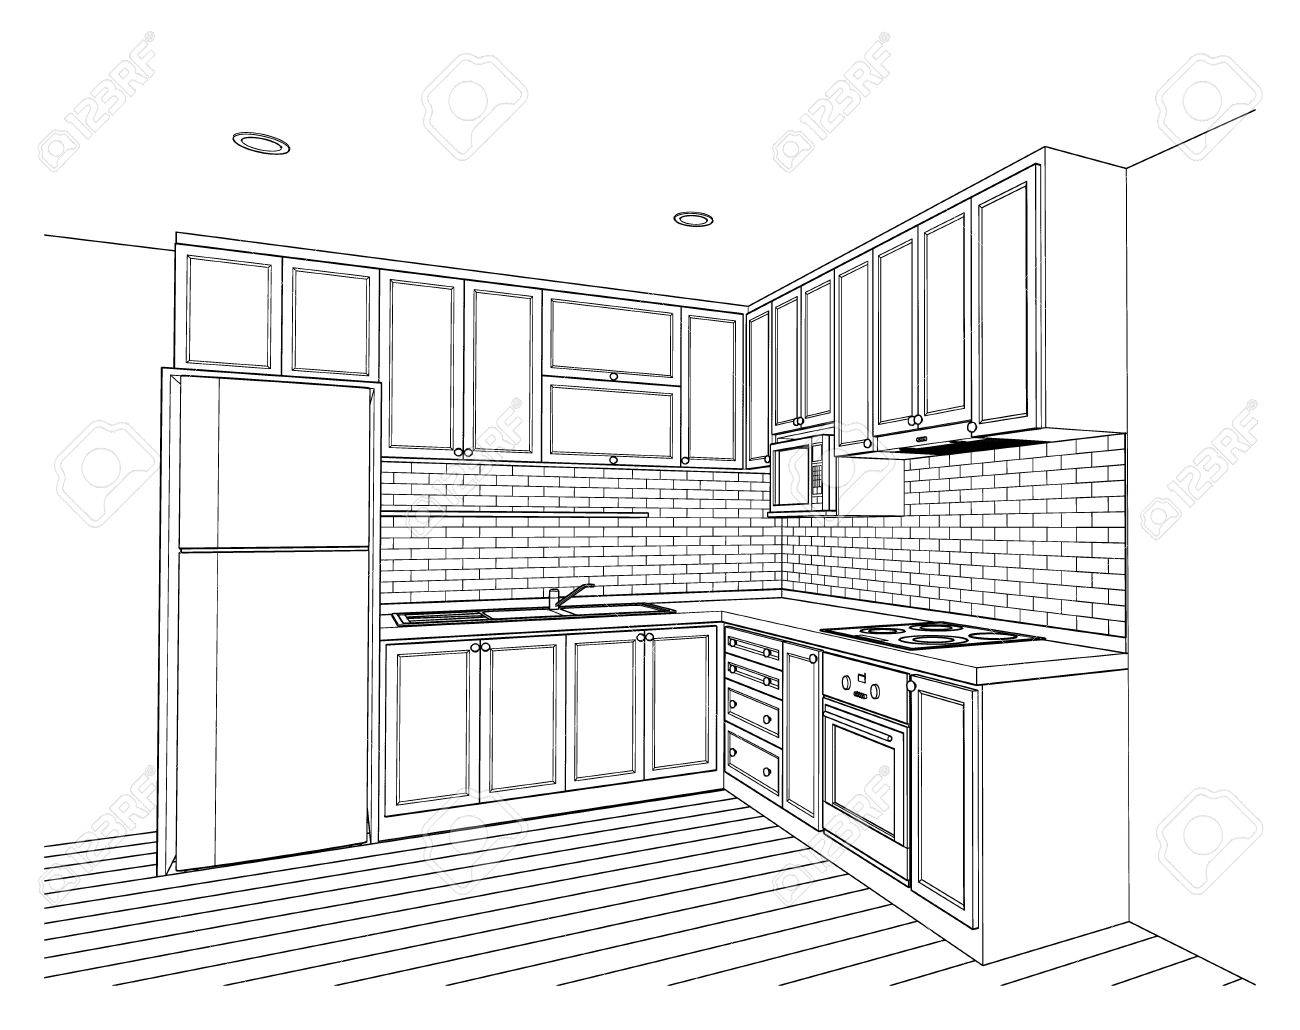 Home Architec Ideas Kitchen Interior Design Sketch